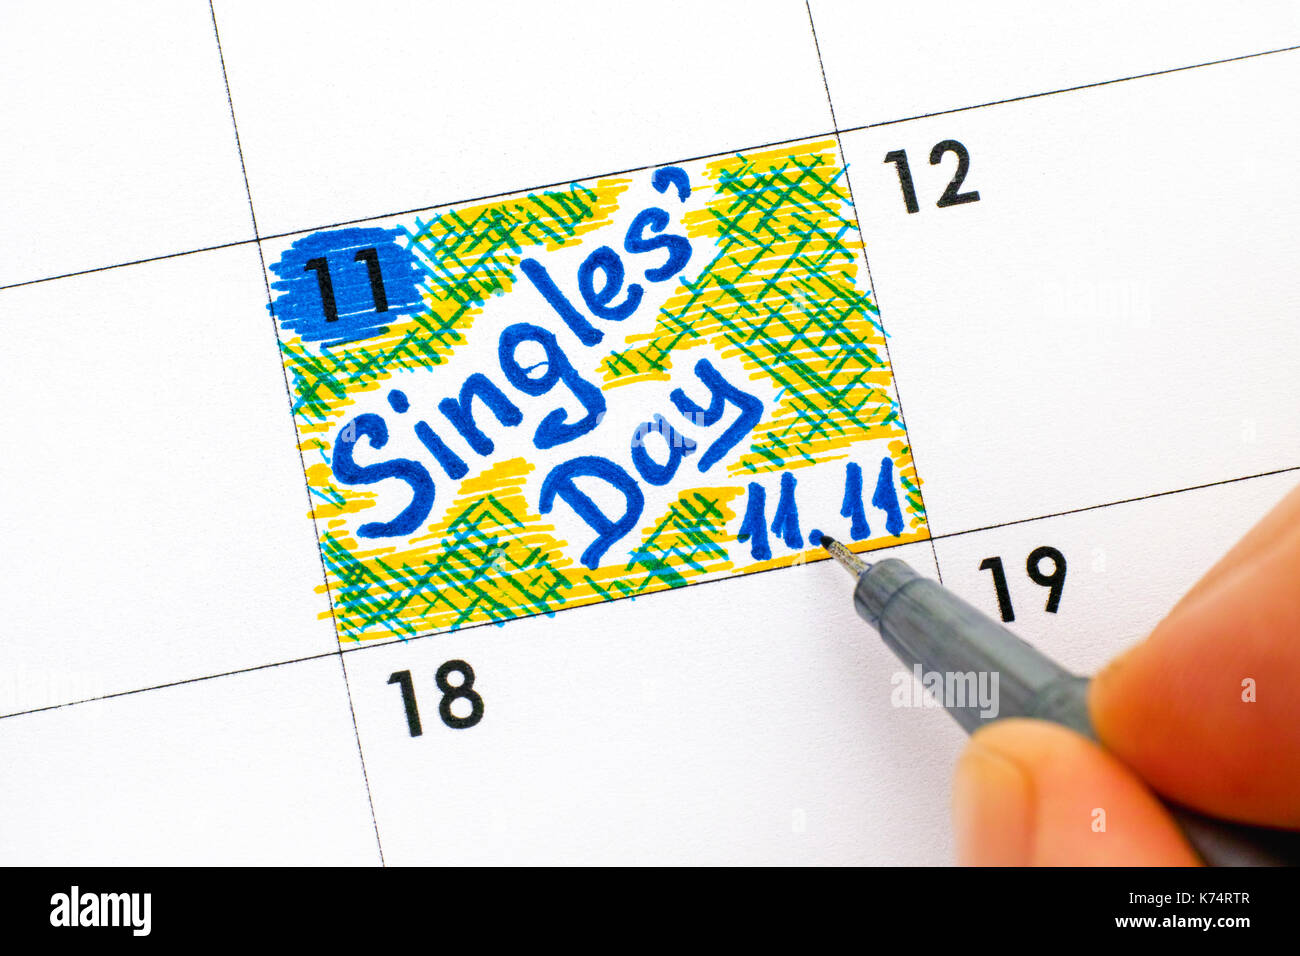 Woman fingers with pen writing reminder Singles Day 11.11 in calendar. Close-up. - Stock Image